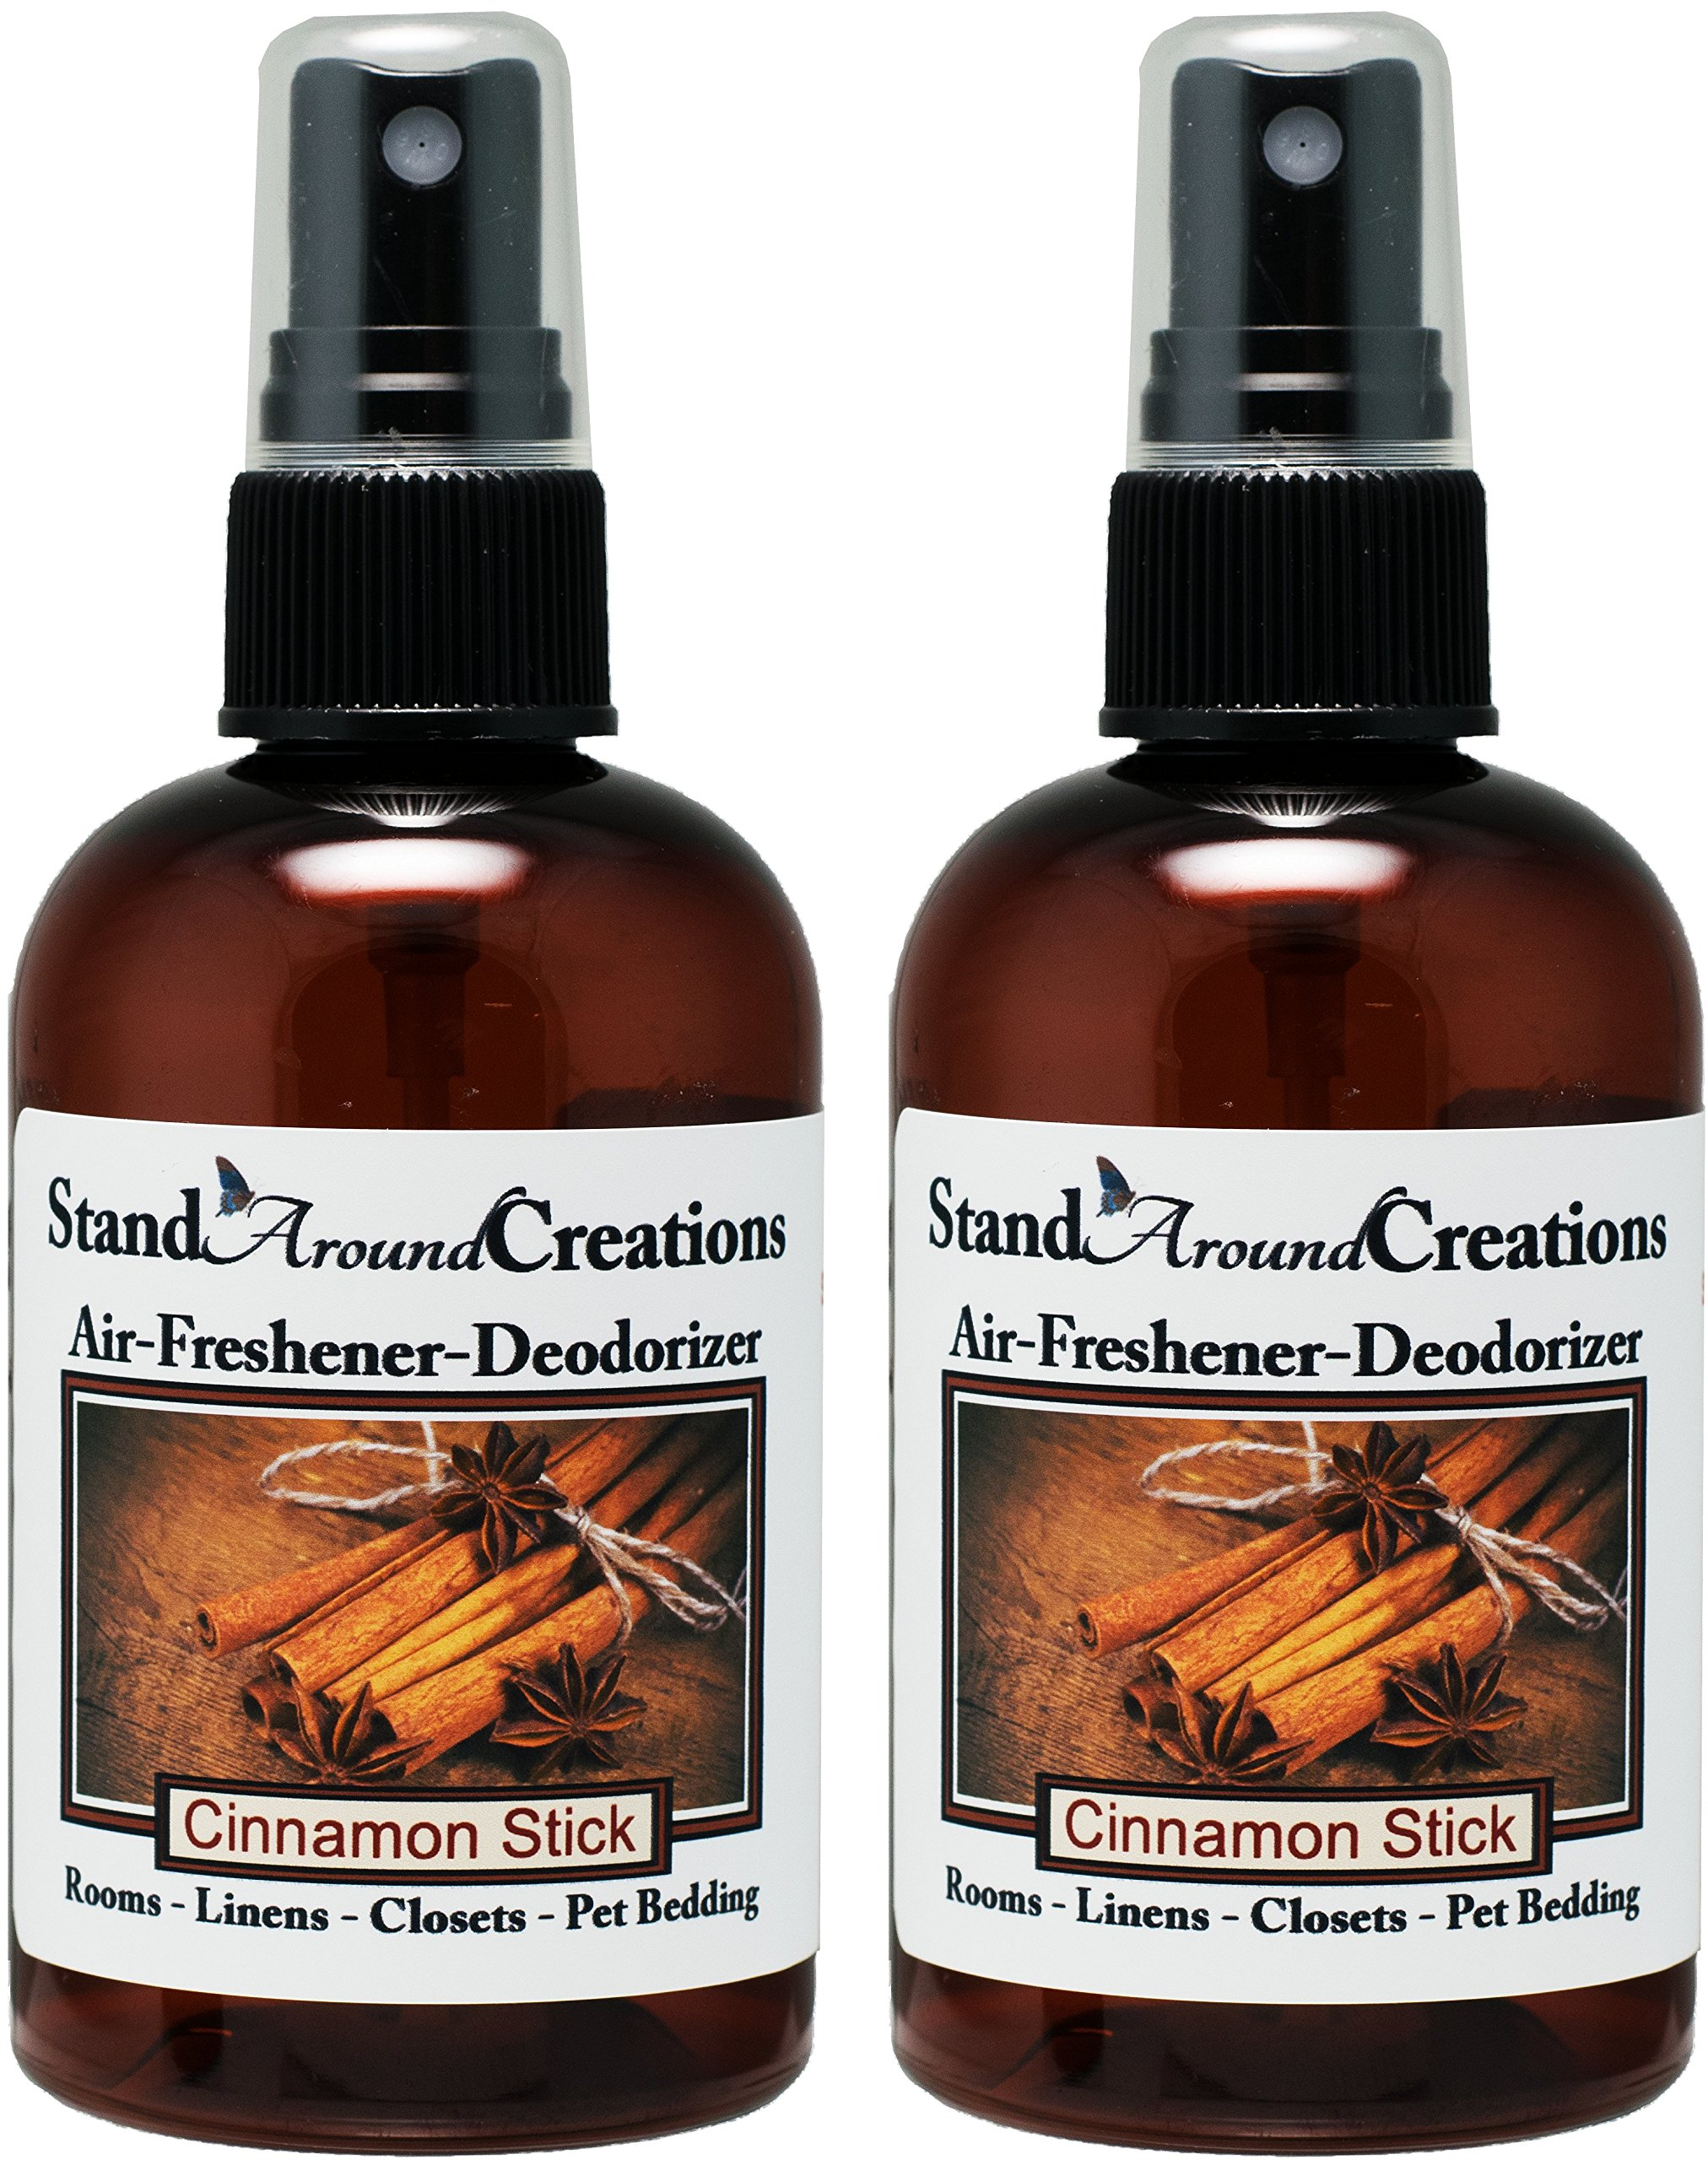 Set of 2-4-oz.-Concentrated Spray Air-Freshener/Deodorizer - Cinnamon Stick - Great for: Cars, Offices, Closets, Air-Conditioners, Pet Beds, Yoga Mats, Litter Boxes, laundry rooms & smoke odors by Stand Around Creations